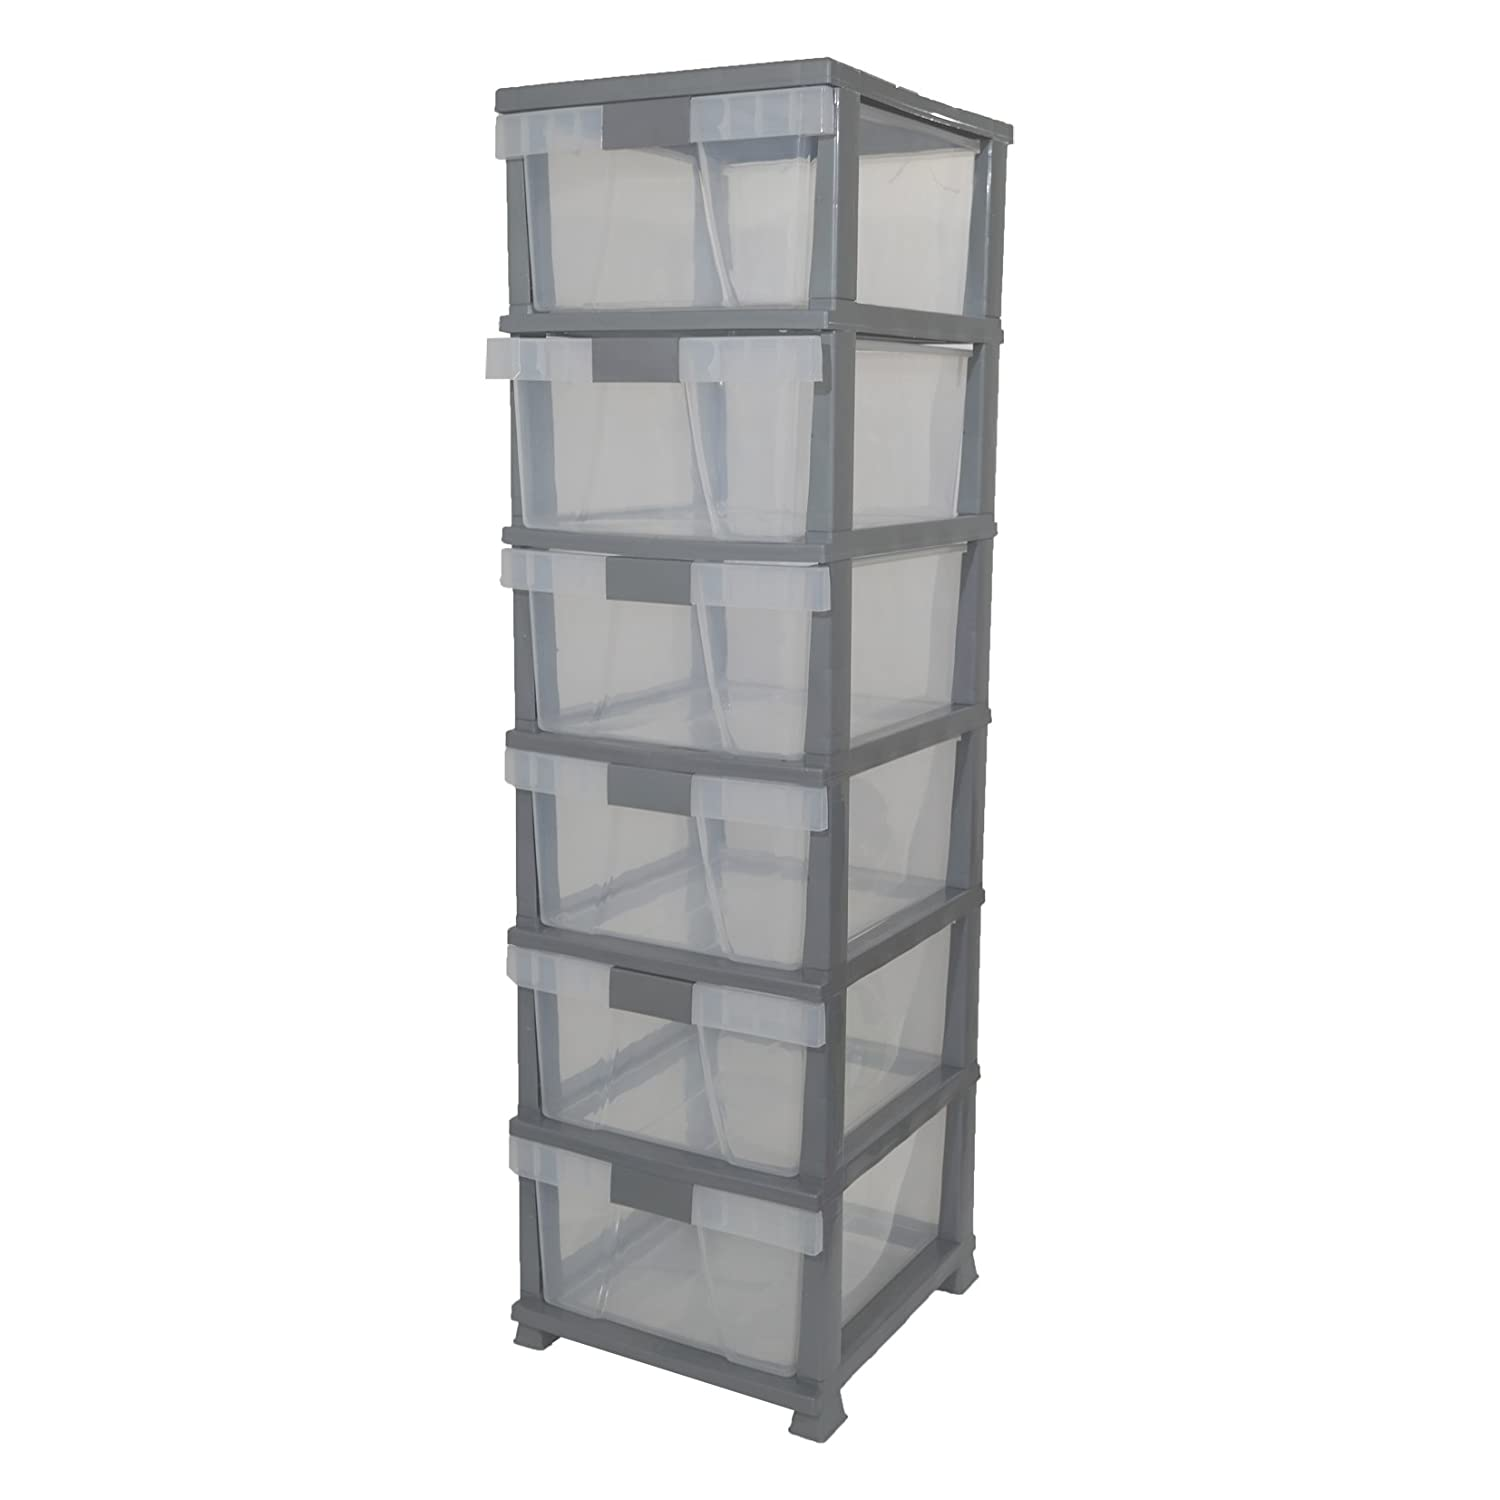 Drawer Plastic Tower Storage Unit Home Office Bedroom Organiser Multi A A Amazon Co Uk Kitchen Home